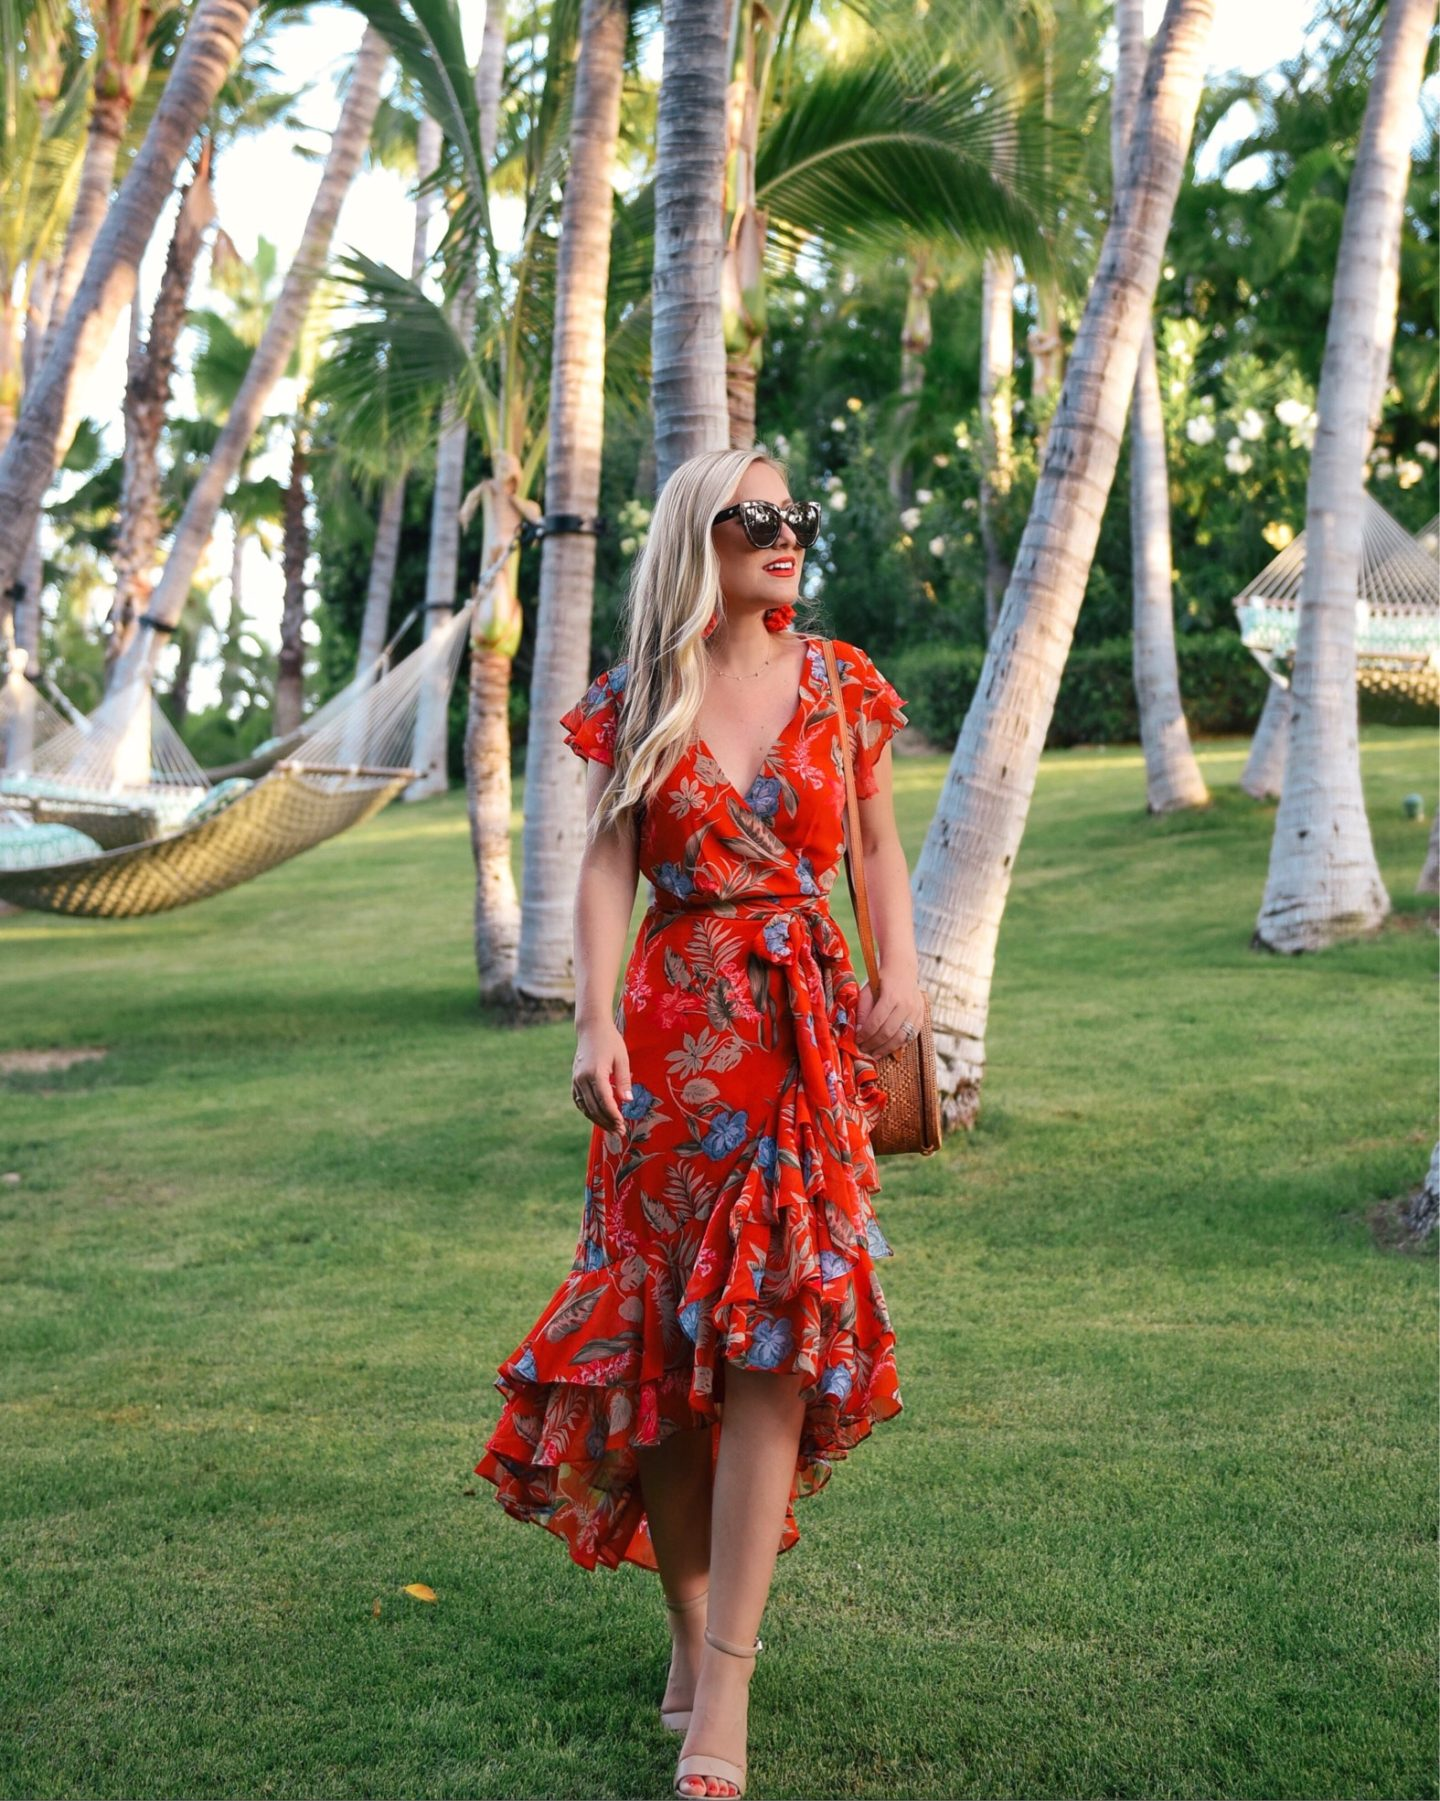 Floral Ruffle Dress in Mexico